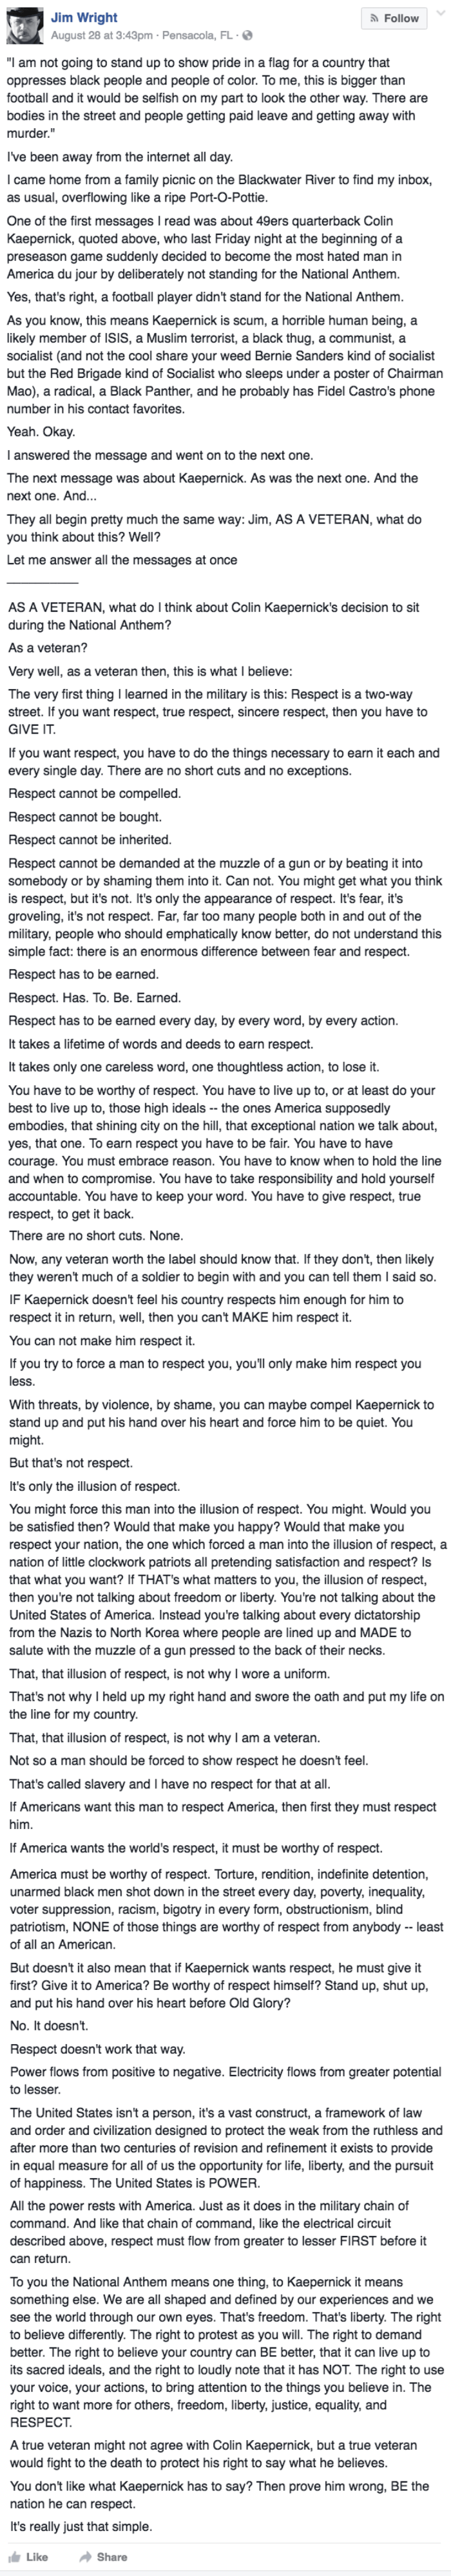 win Veteran Jim Wright responds to Colin Kaepernick's refusal to stand on facebook